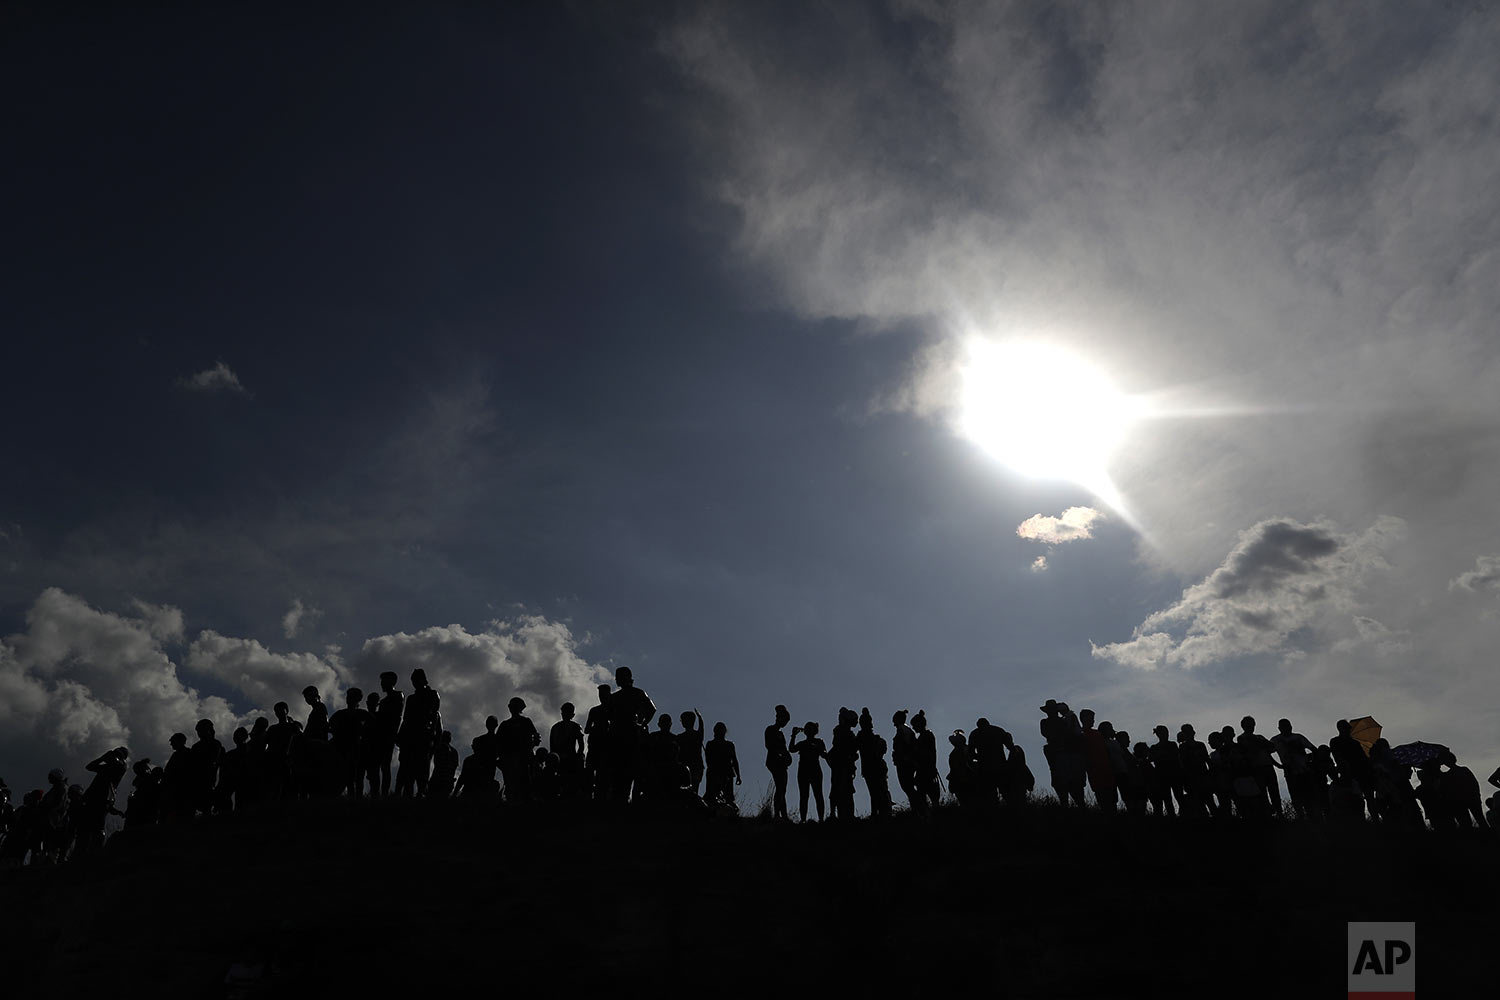 People painted with black grease gather on top of a hill as they take part in the traditional festivities of the Cascamorras festival in Baza, Spain, Friday, Sept. 6, 2019. (AP Photo/Manu Fernandez)